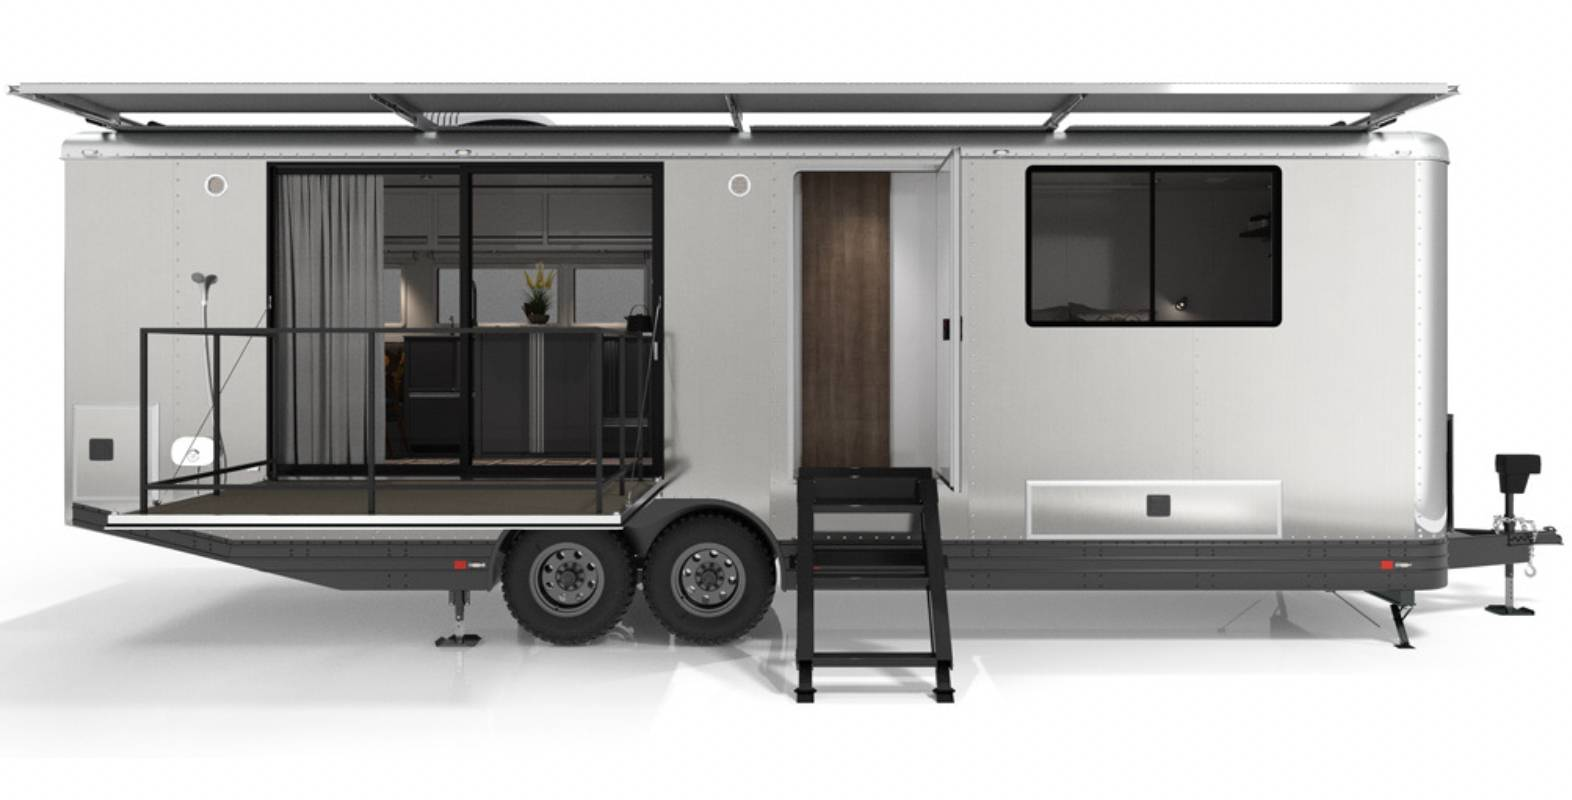 living vehicle base model trailer with deck and steps